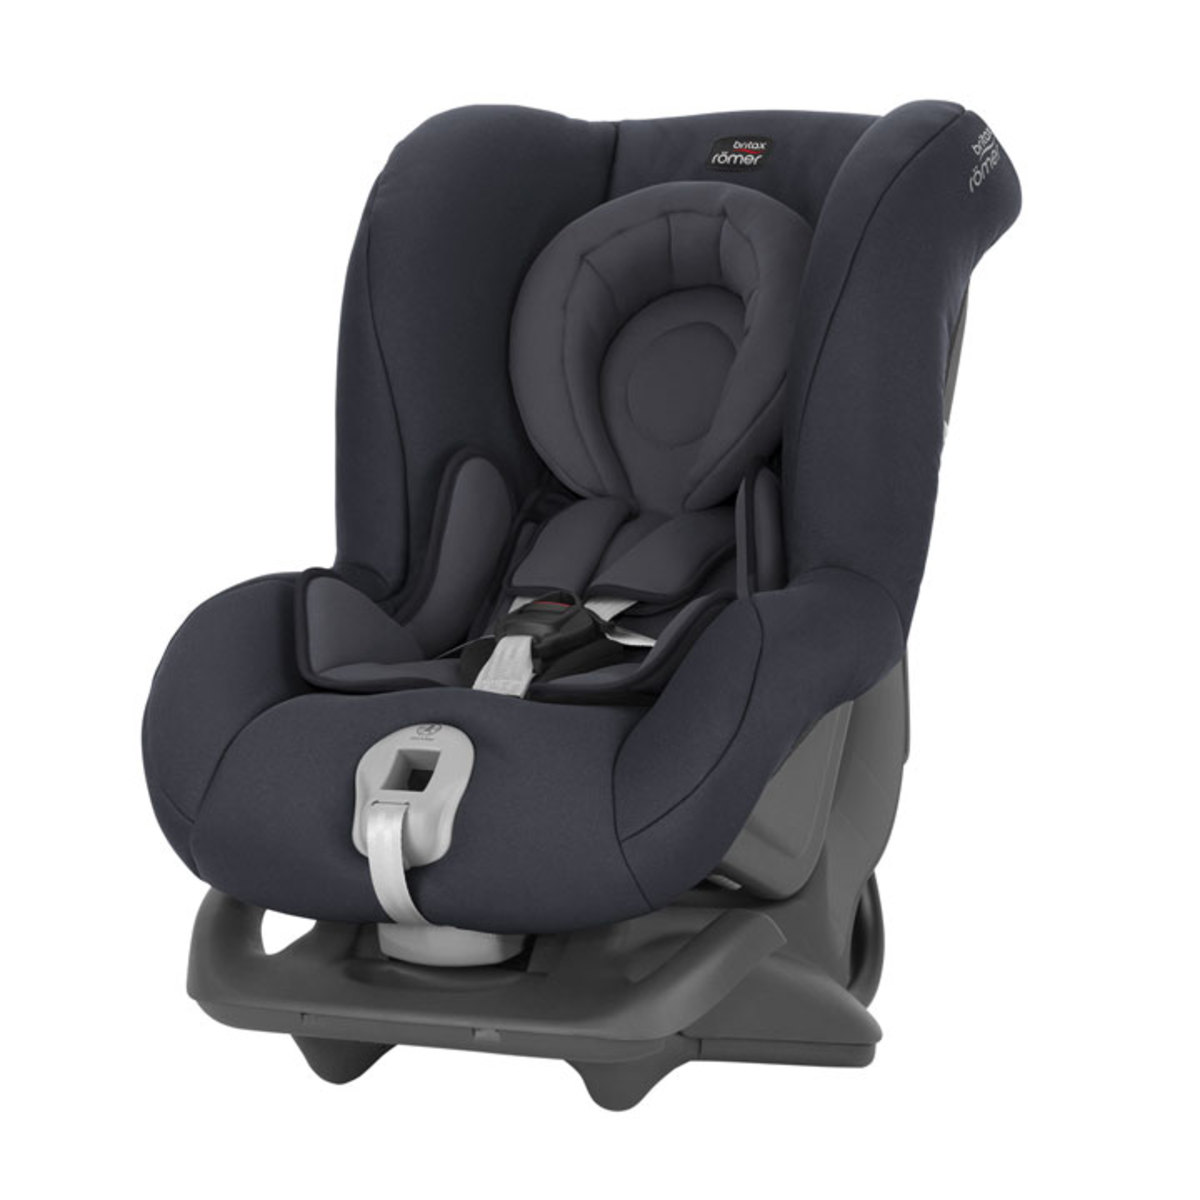 britax r mer si ge auto first class plus groupe 0 1 storm grey si ge auto et coque britax. Black Bedroom Furniture Sets. Home Design Ideas